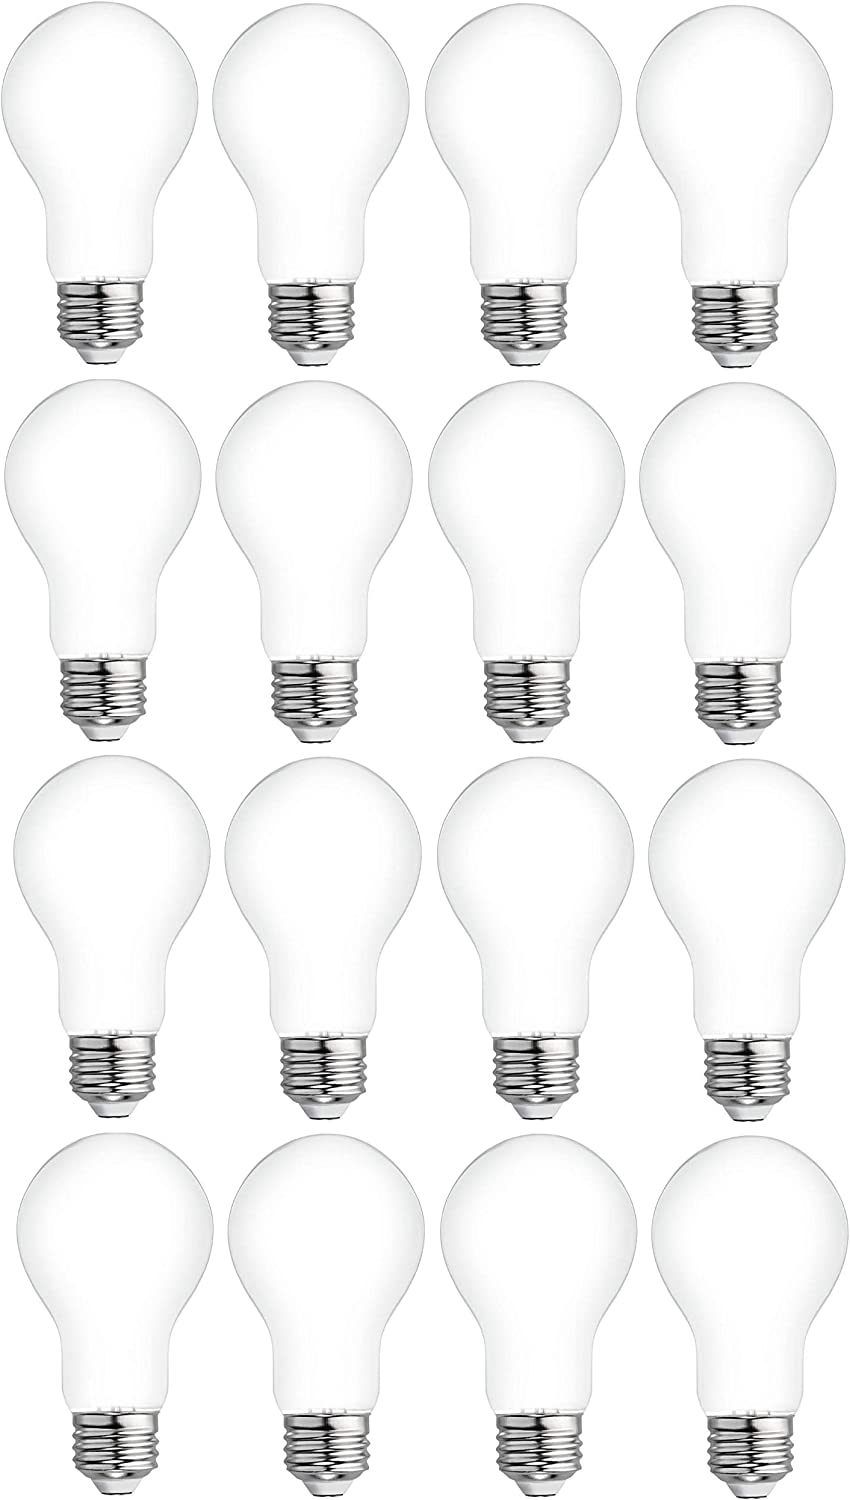 GE Classic 16-Pack 60 W Equivalent Dimmable Soft White A19 LED Light Fixture Light Bulbs